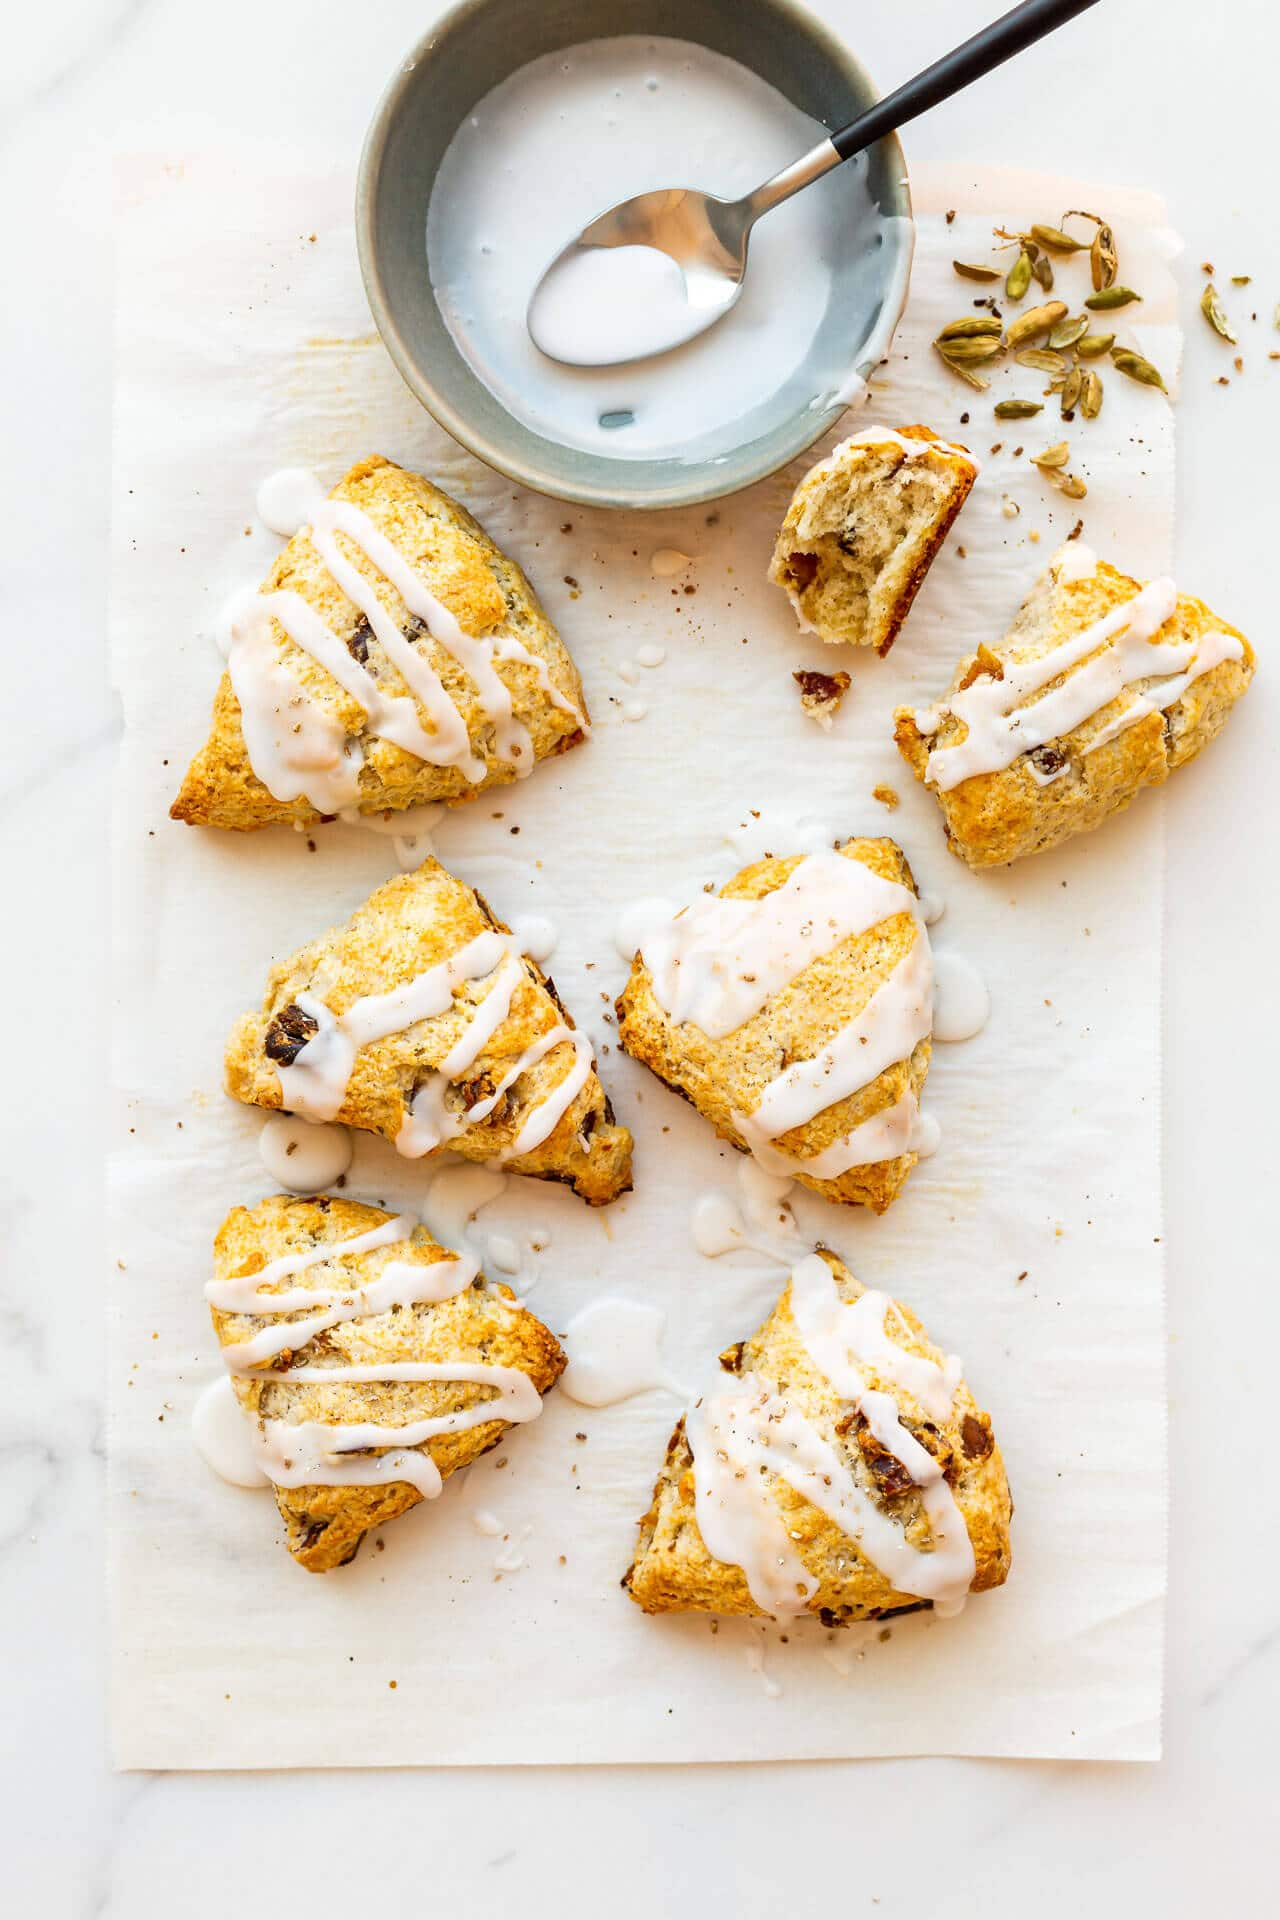 Six (6) glazed fruit scones with icing drizzled on from a bowl with a spoon, sprinkled with freshly ground cardamom from pods